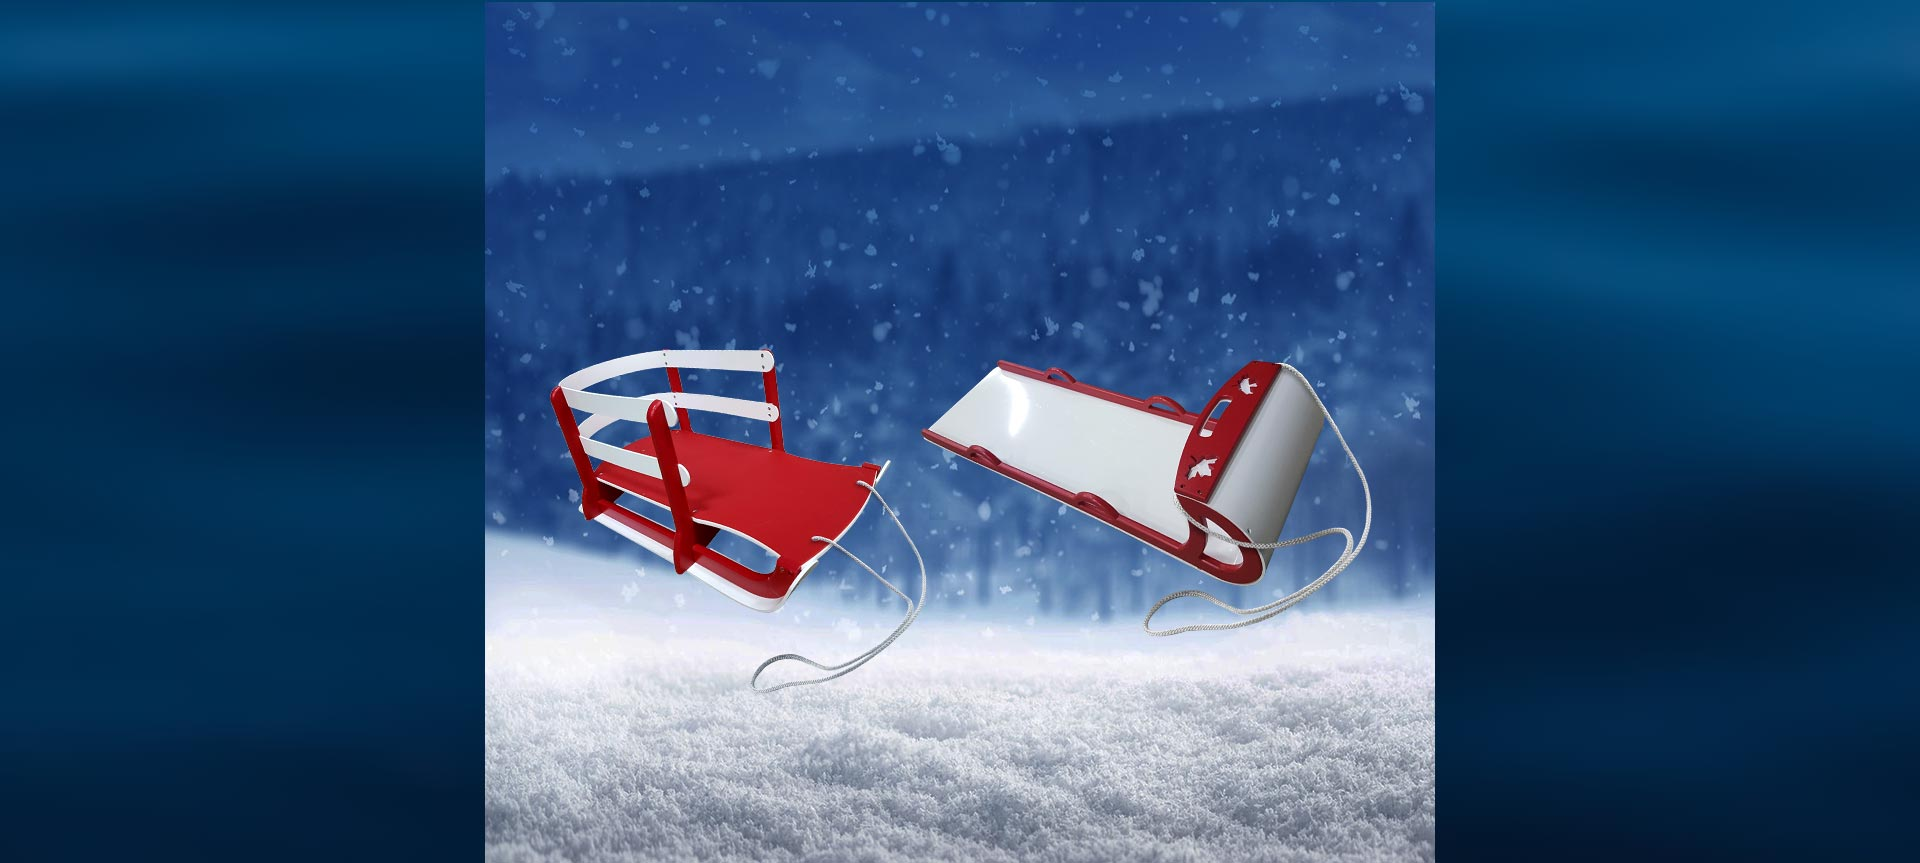 BeaverSprings Winter Sport Sled and Toboggan Collection